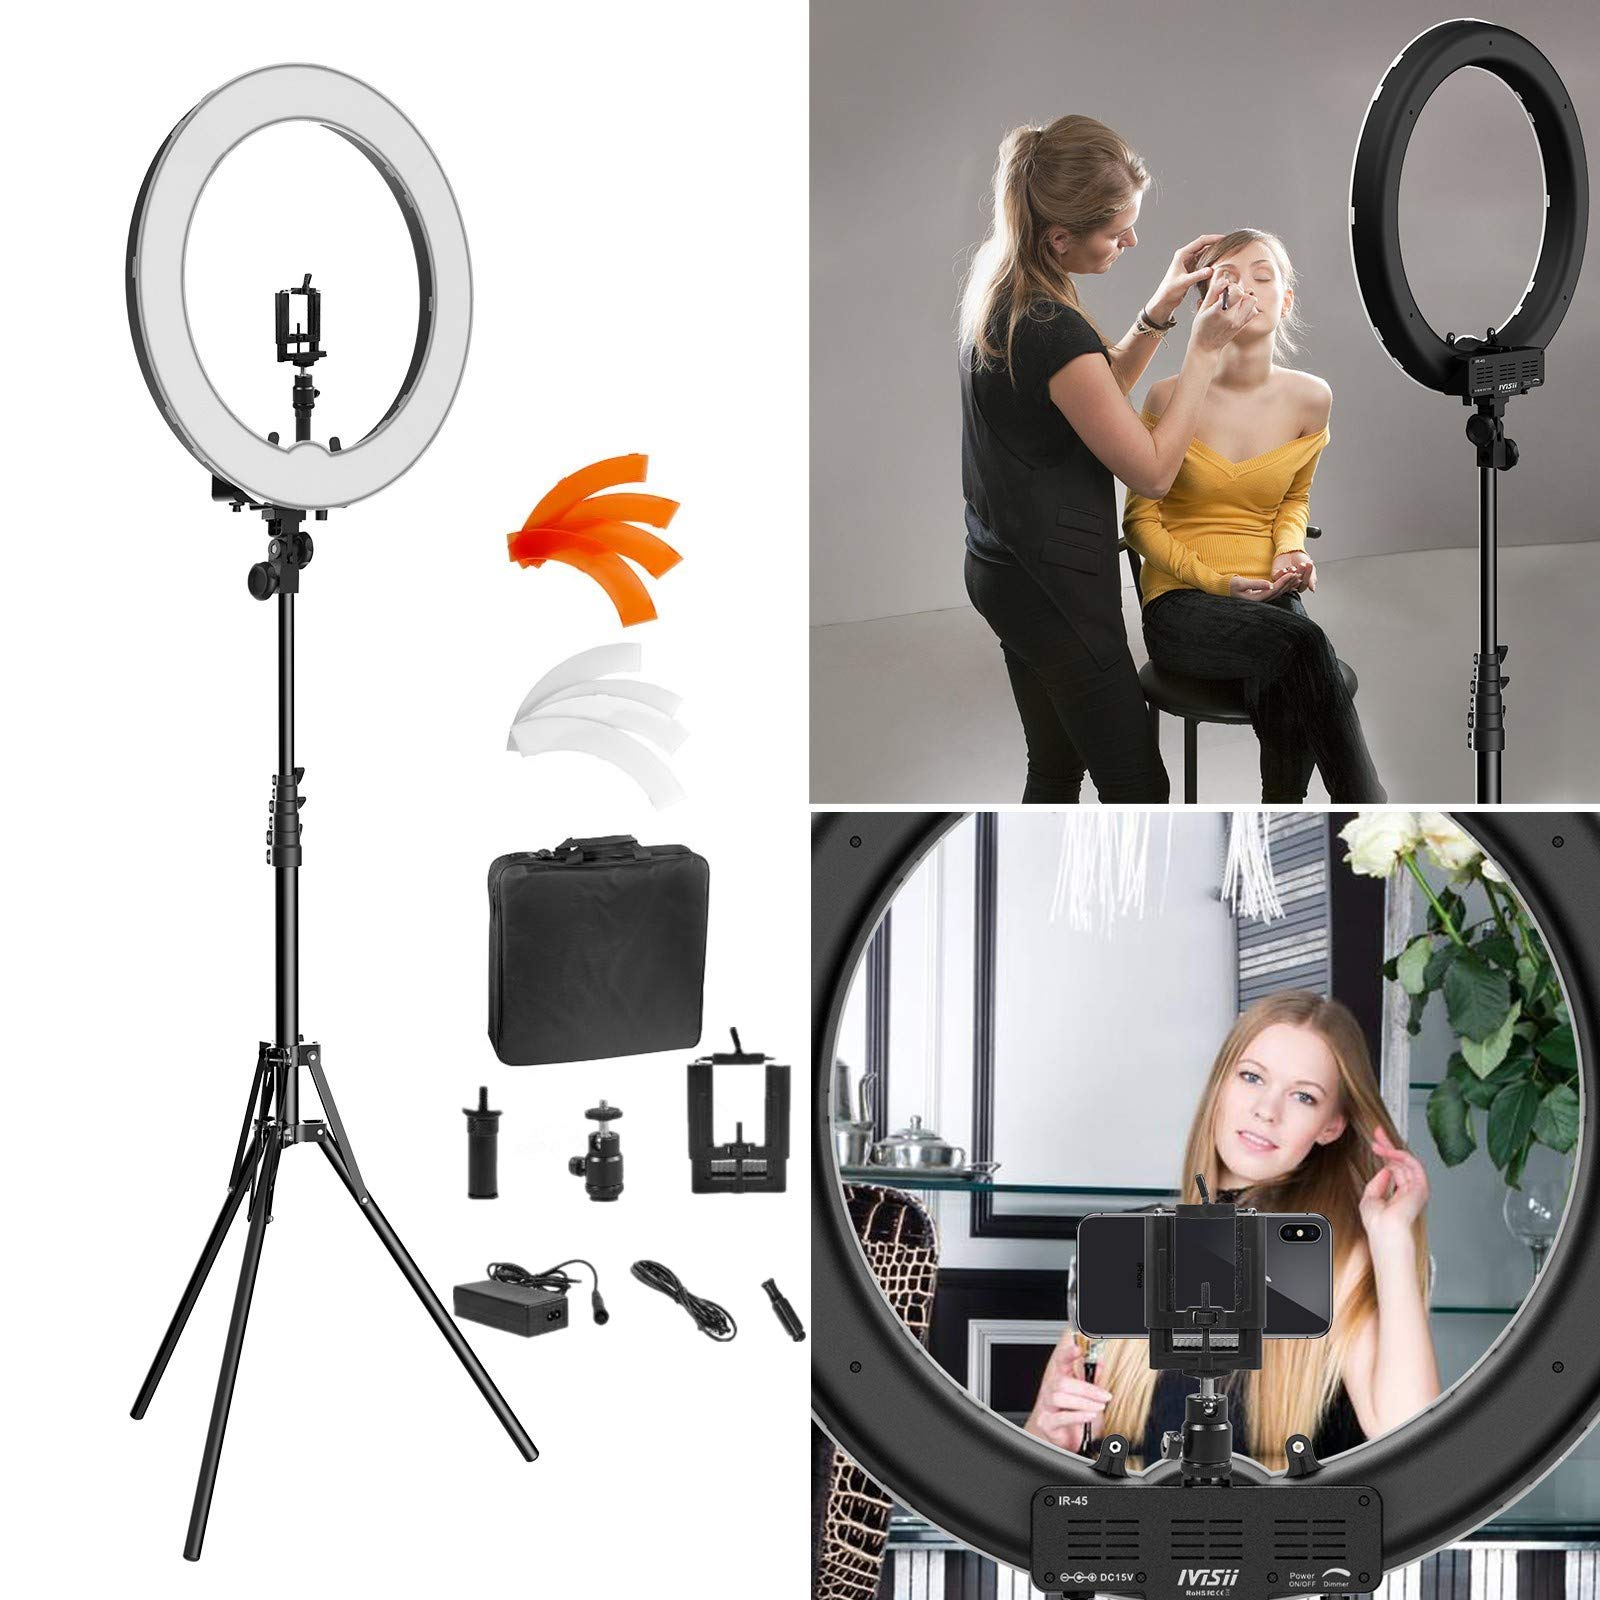 Ring Light Kit:18'' 48cm Outer 55W 5500K Dimmable LED Ring Light, Light Stand, Carrying Bag for Camera,Smartphone,YouTube,Self-Portrait Shooting